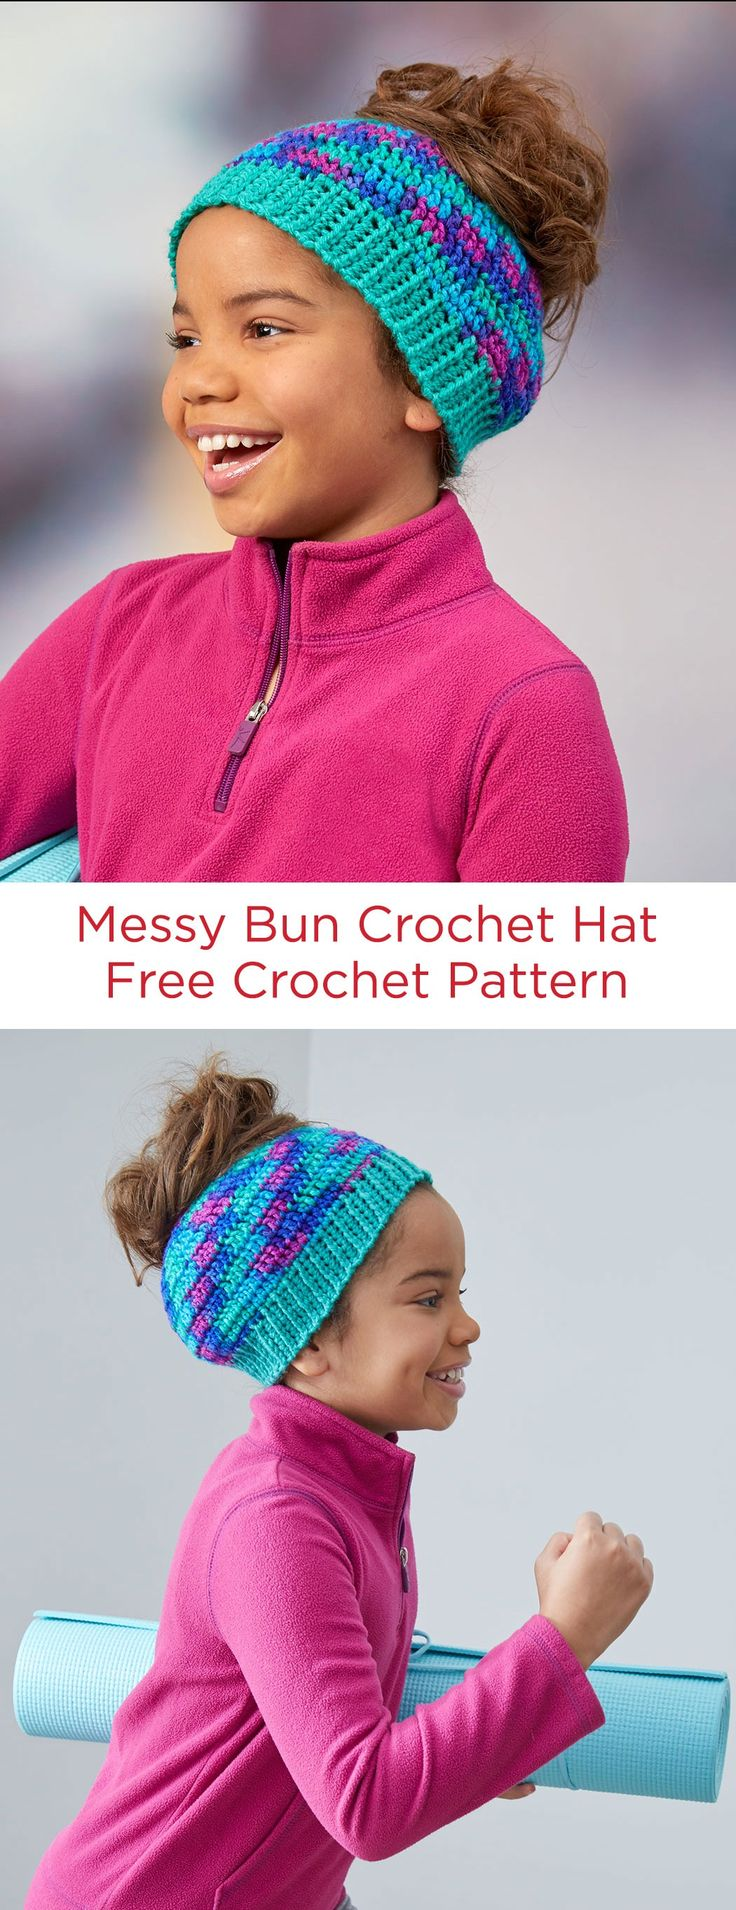 Messy Bun Crochet Hat Free Crochet Pattern in Red Heart Yarns -- This trendy style hat makes it easy to wear your hair in a bun, even while wearing a hat. It's a regular crochet style beanie, but with the added feature of a hole to accommodate your bun or pony tail.